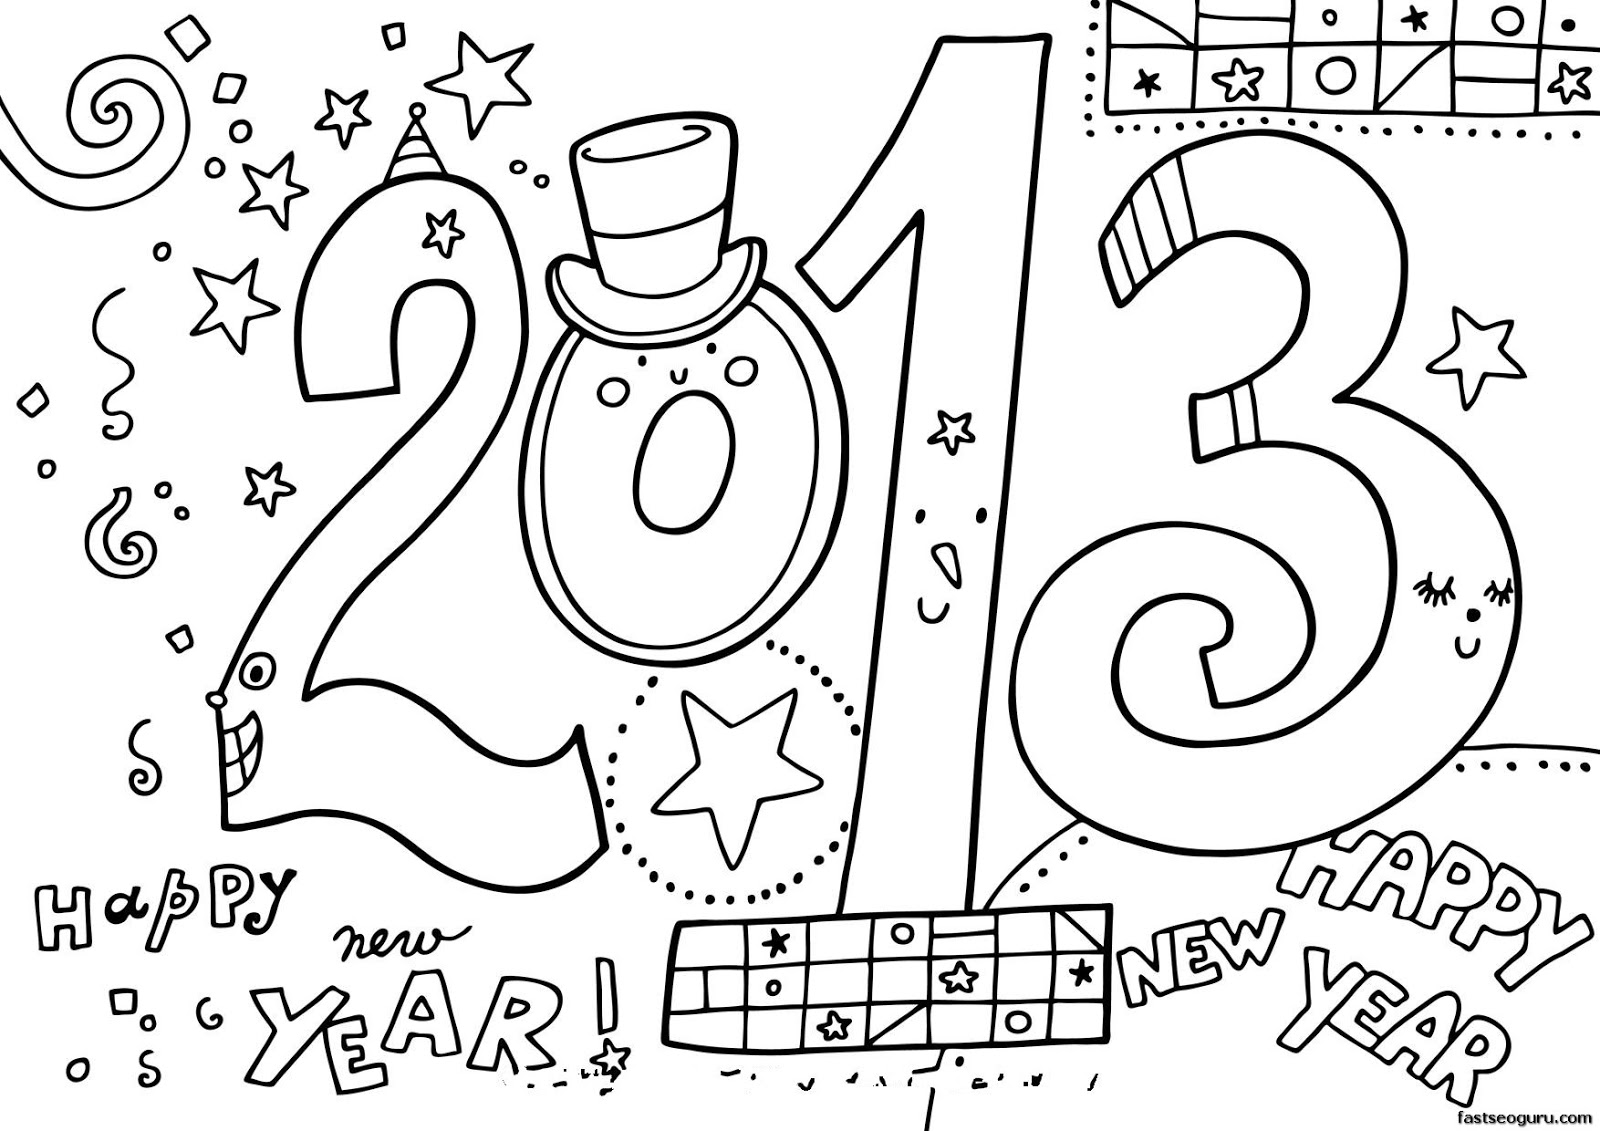 filename new year 2013 printable coloring page_1jpg